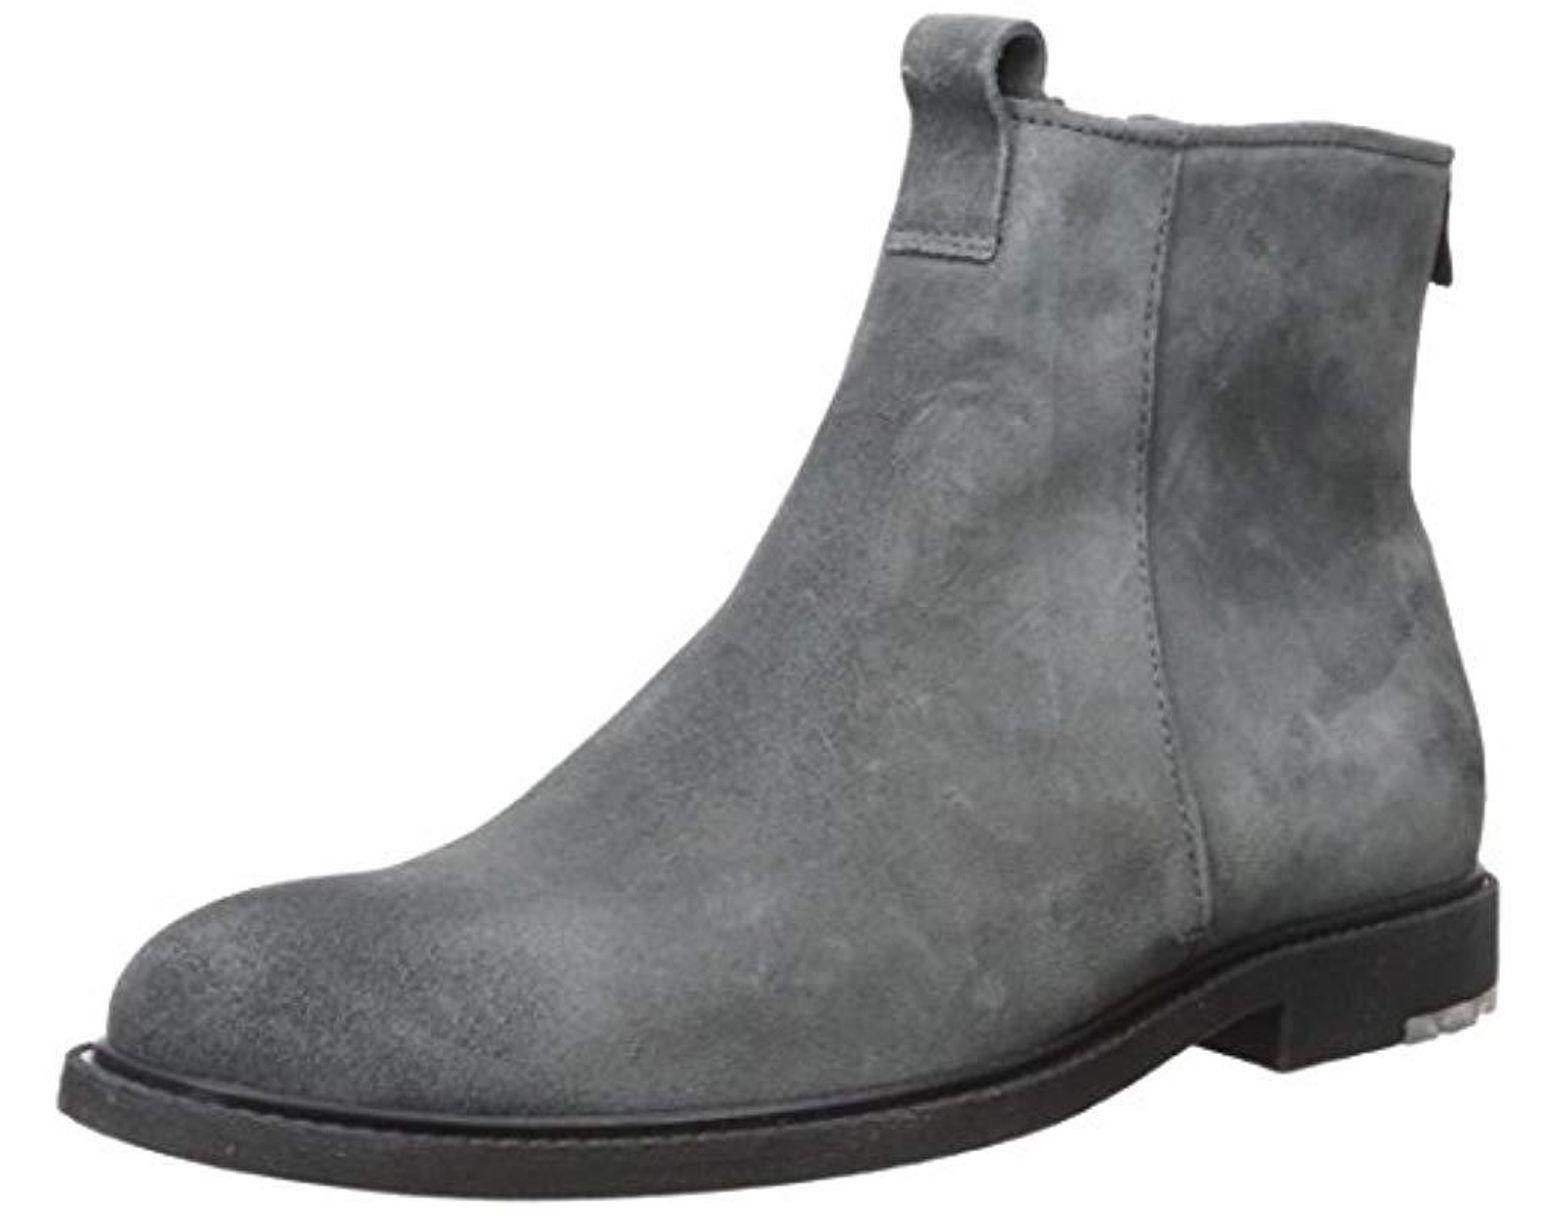 bcf638fec4b5 Lyst - BOSS Boss Orange Cultural Roots Suede Zip Boot Fashion in Gray for  Men - Save 4%